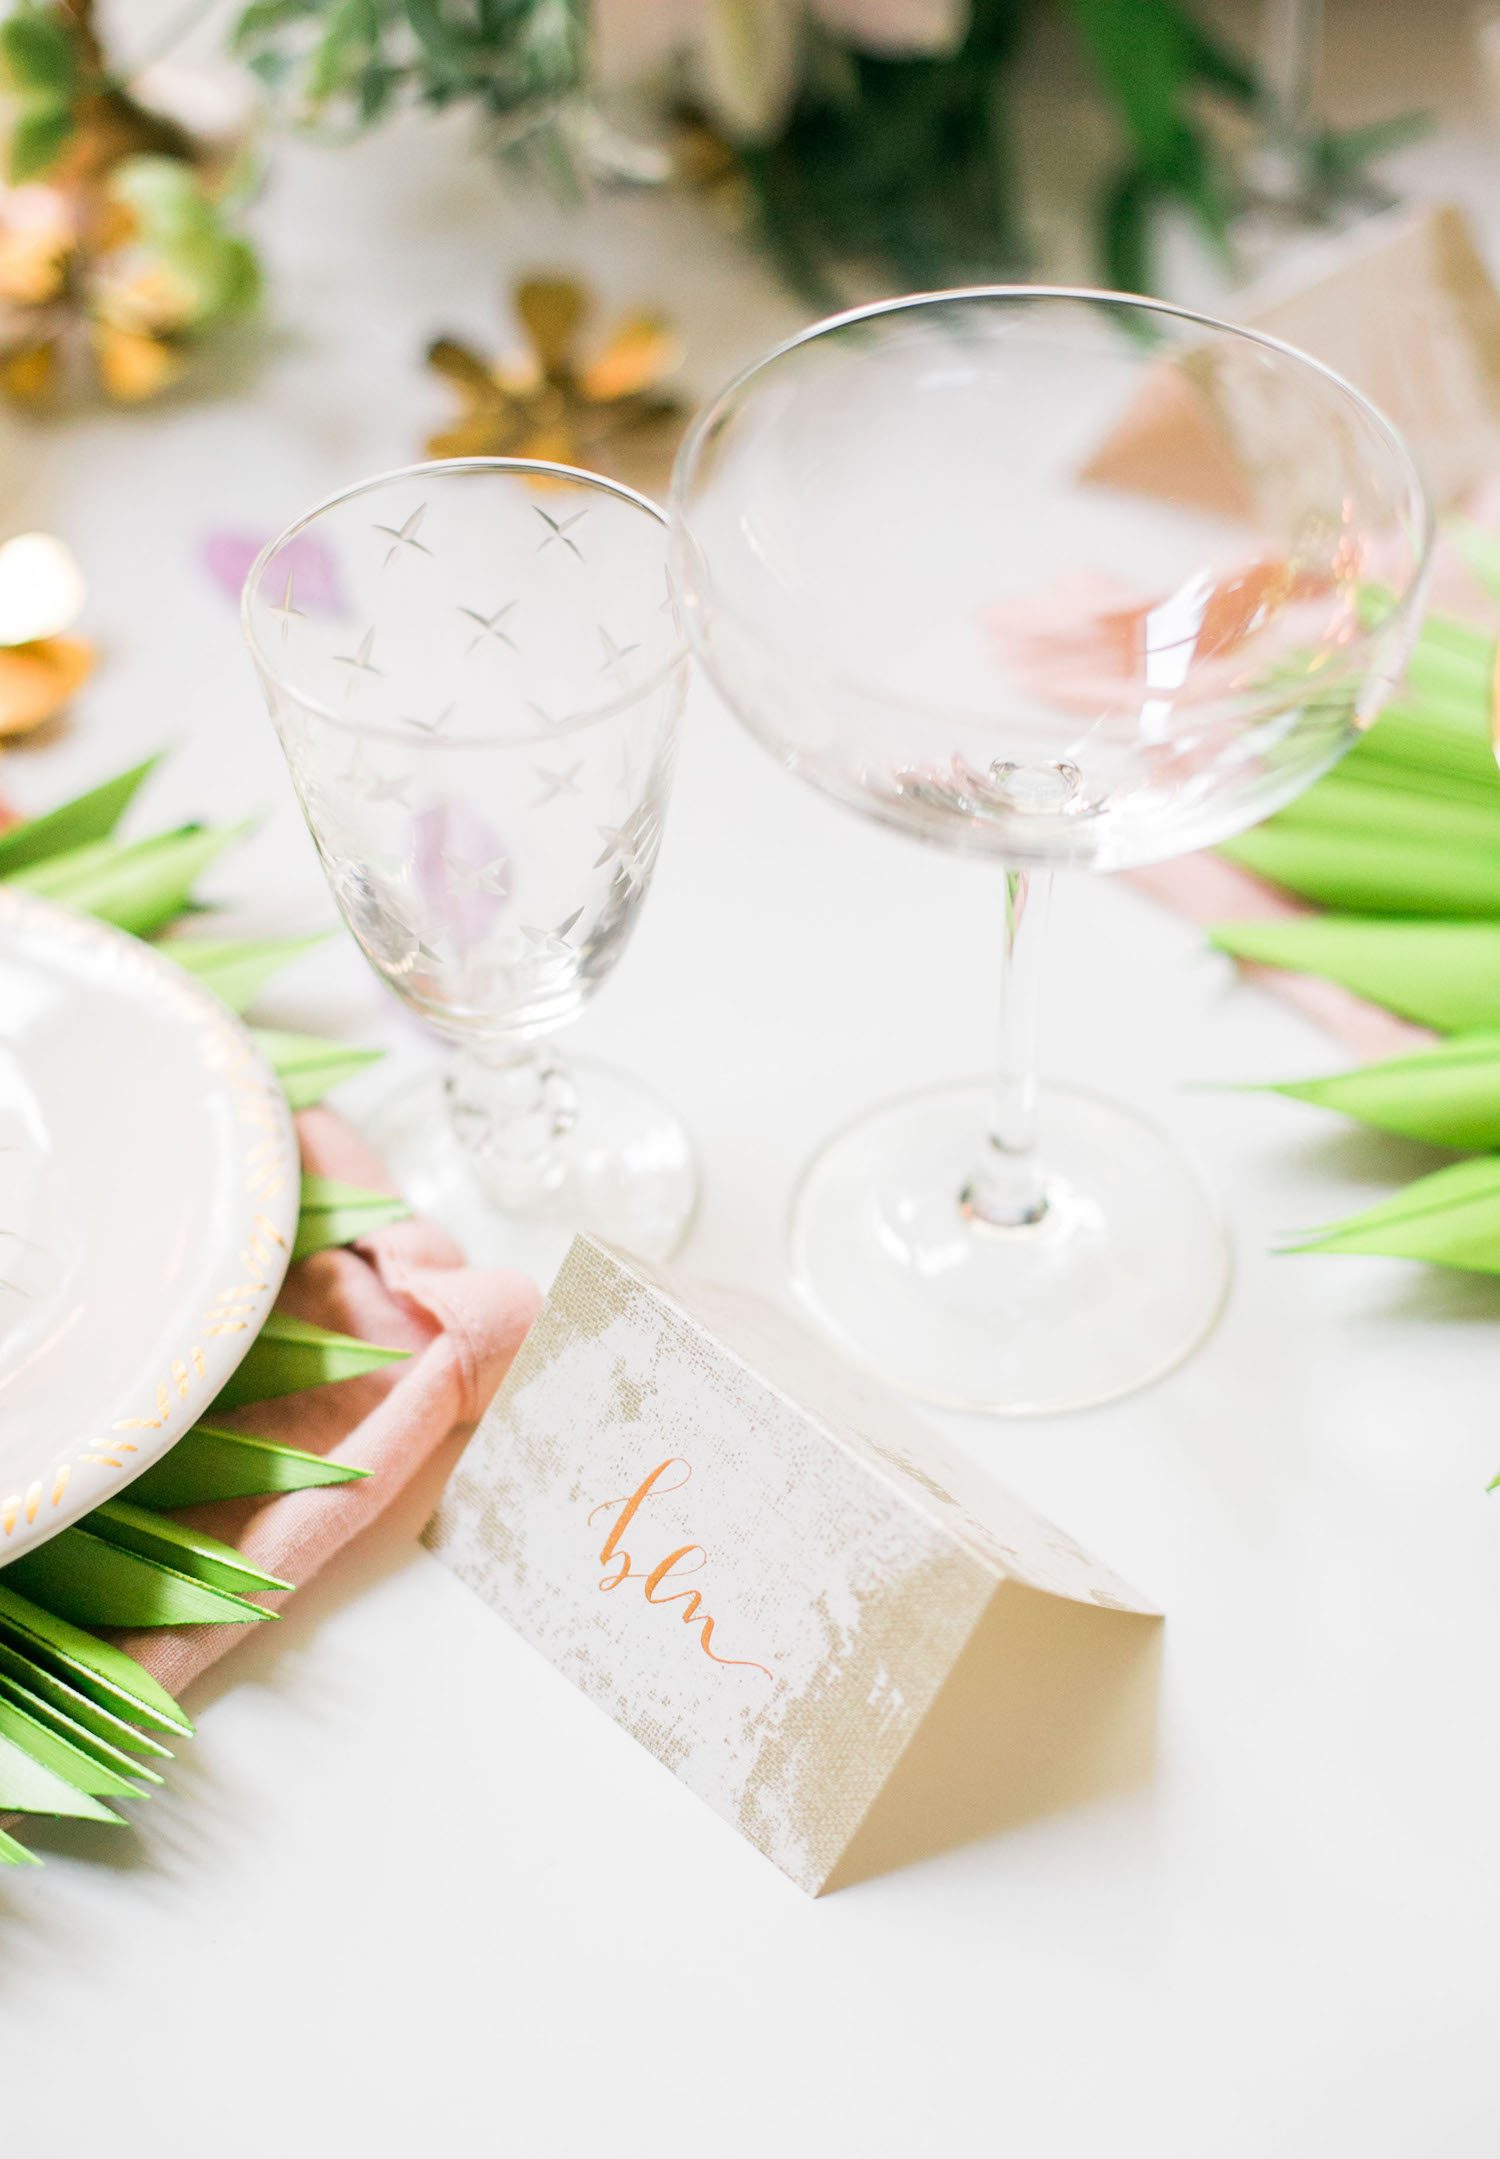 Gold calligraphy place cards for your rehearsal dinner | A Fabulous Fete